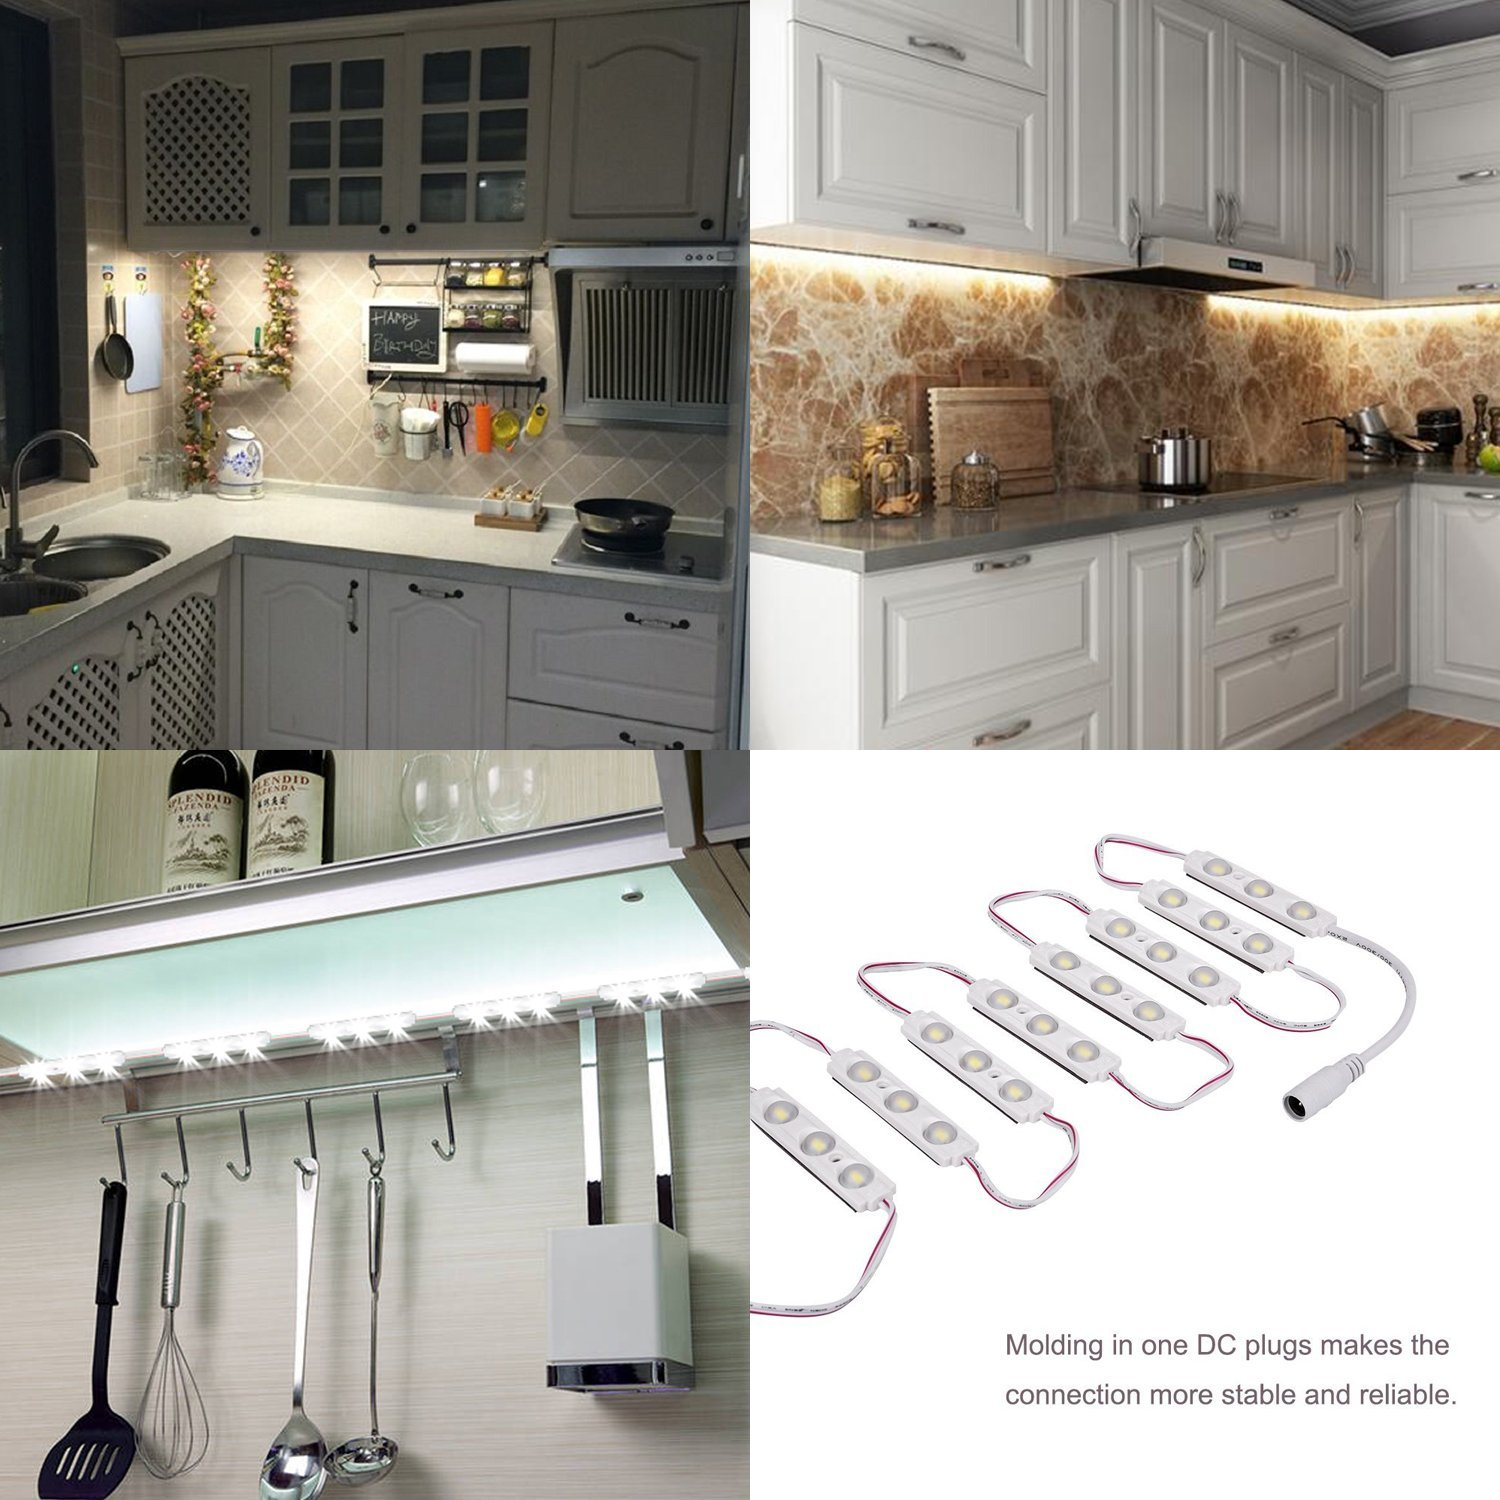 Kimbar LED Under Cabinet Dimmable Lighting Kit Closet Kitchen Counter Vanity Mirror DIY Lights Kit for Makeup Dressing Table Feeding Night Baby Bedside Lamp 36W 2400LM-60leds White 10f Warm White